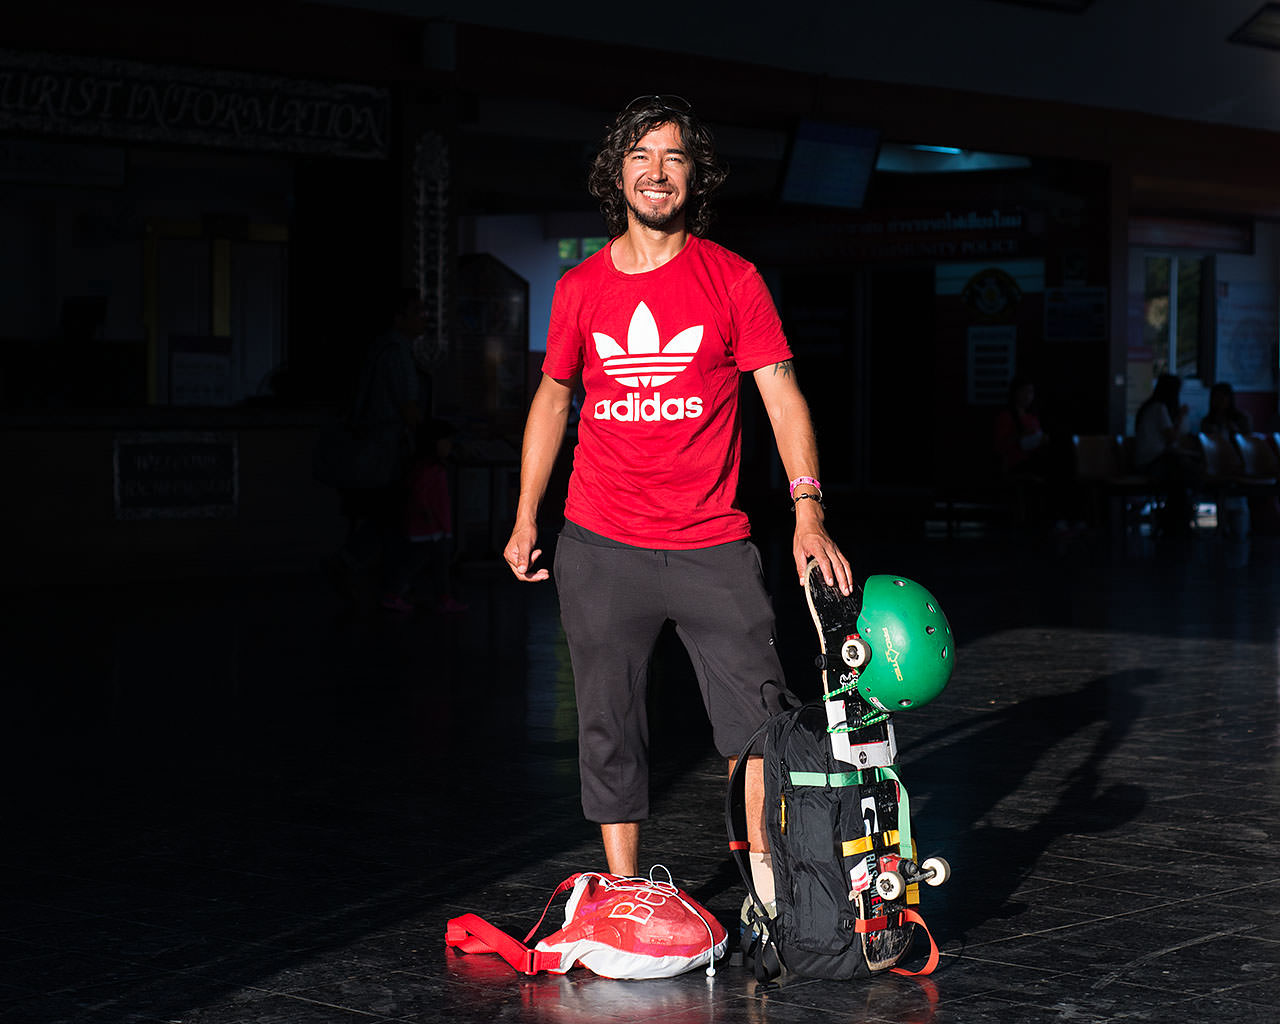 """""""This skateboard is my girlfriend. She goes with me everywhere. I say, 'Hey, let's go!' She says, 'No problem!'""""   """"Does she have a name?""""   """"No, no name. Just my skateboard.""""  — Felix (Chile)  [Portrait created in Chiang Mai, Thailand]"""